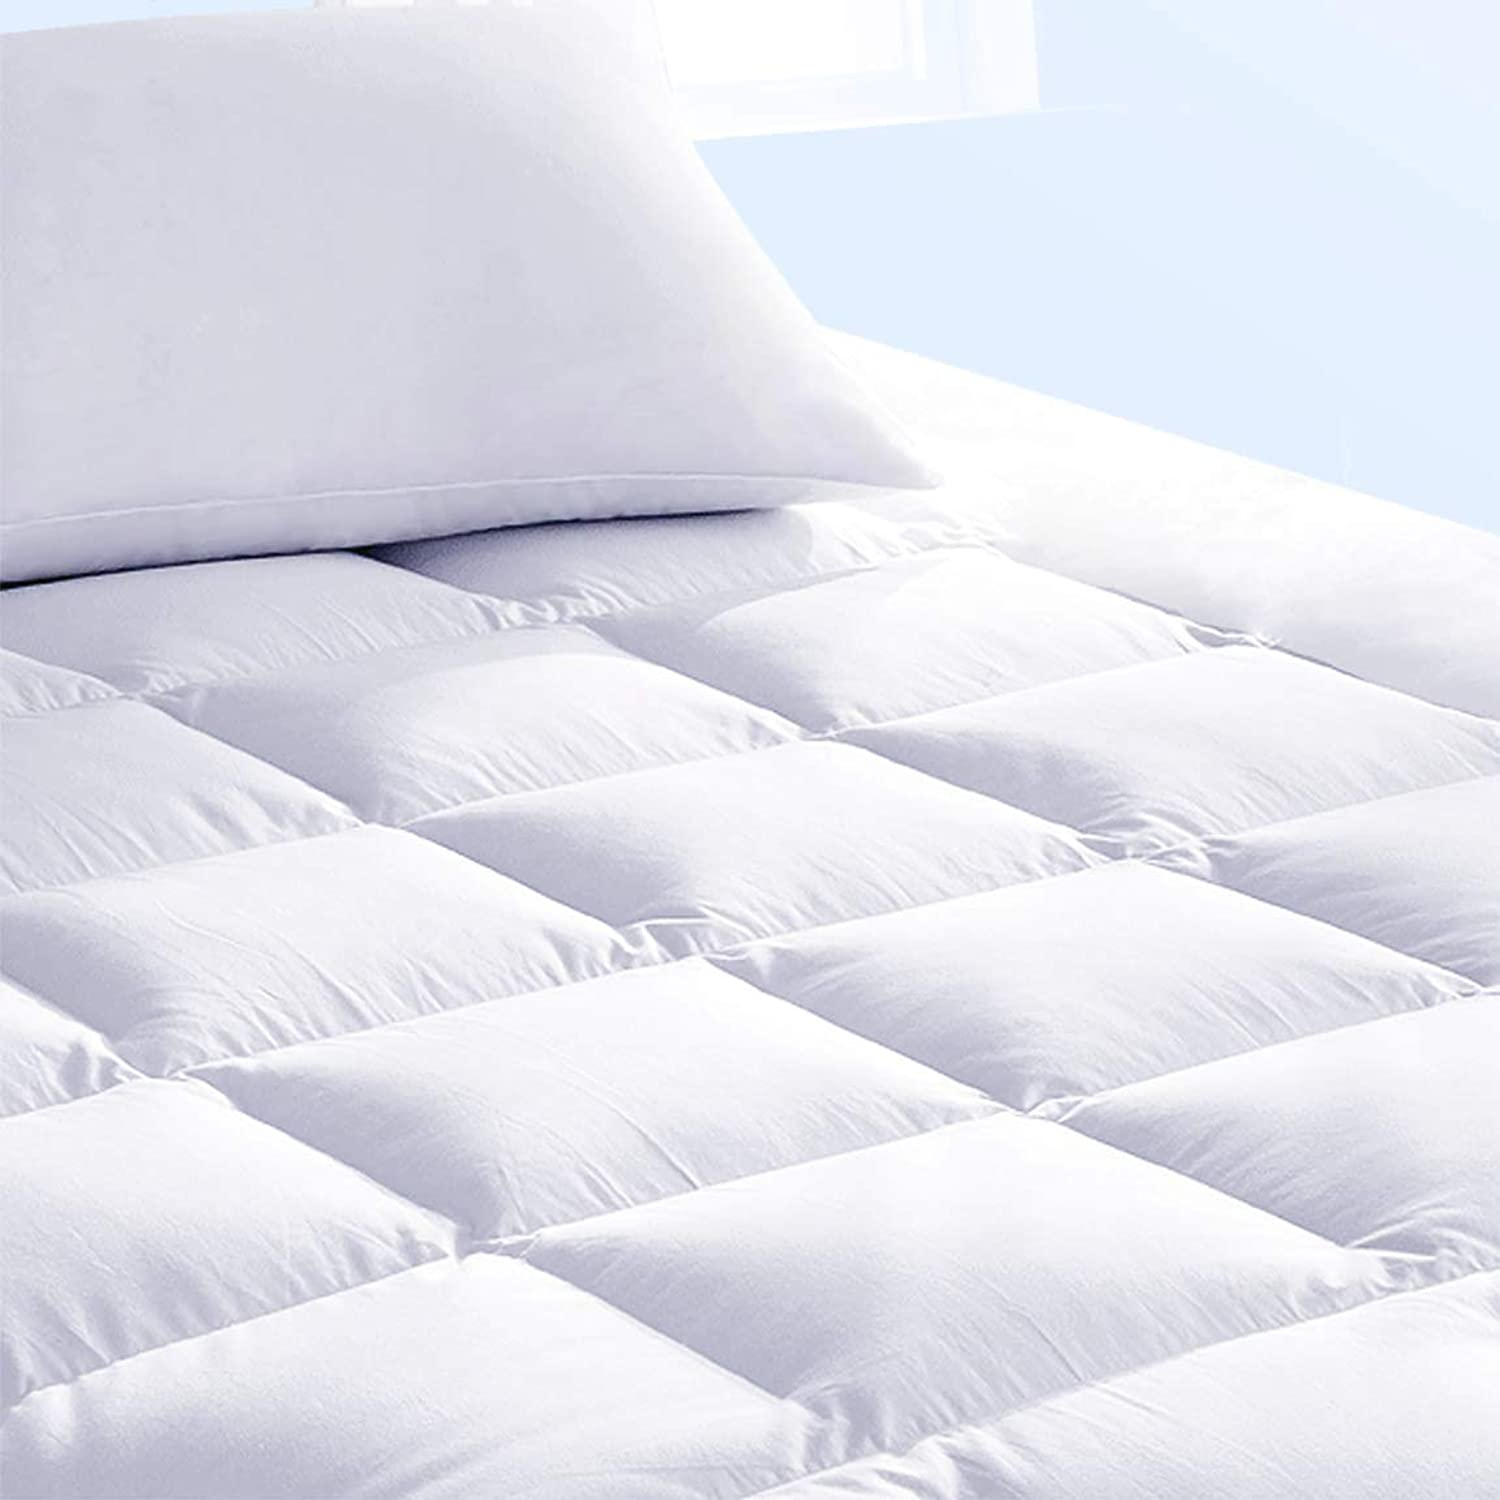 Pure Brands Mattress Topper & Mattress Pad Predector in One - Quality Plush Luxury Down Alternative Pillow Top - Make Your Bed Luxurious - 18  Deep Pocket - King Size